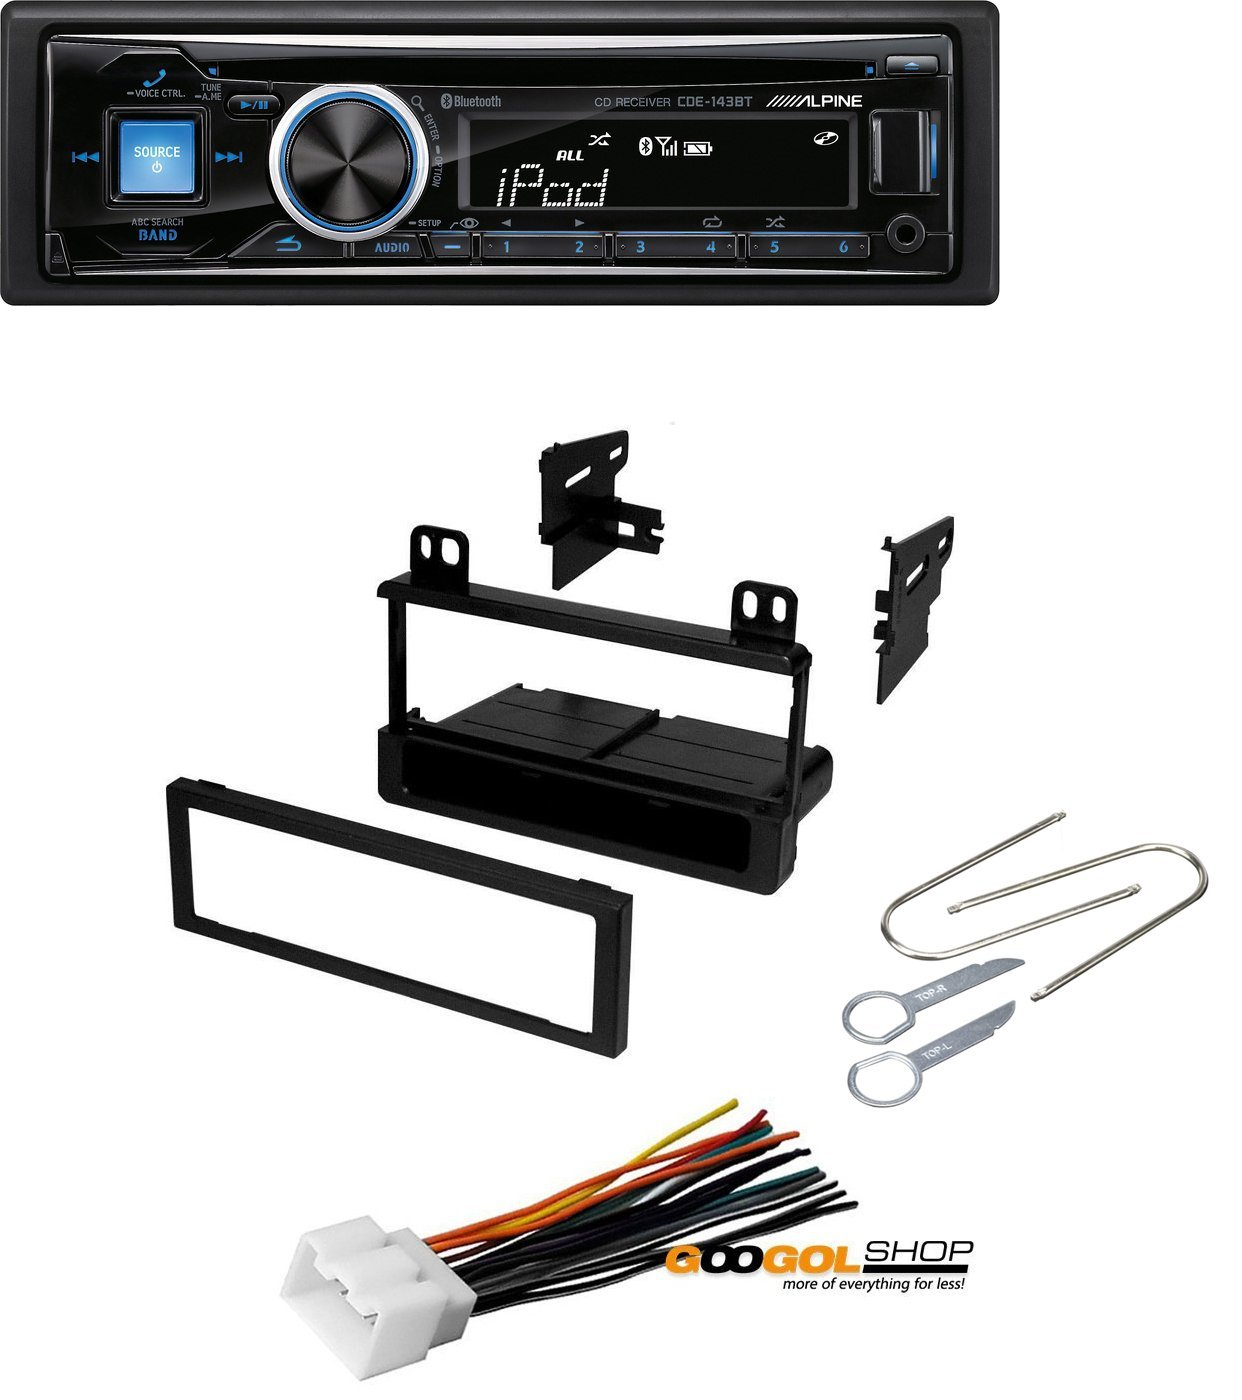 Car Stereo Radio Kit Dash Installation Mounting Install Dodge Ram Pickup 06 2006 Wiring Harness Removal Tools With Alpine Advanced Bluetooth Cd Receiver Electronics